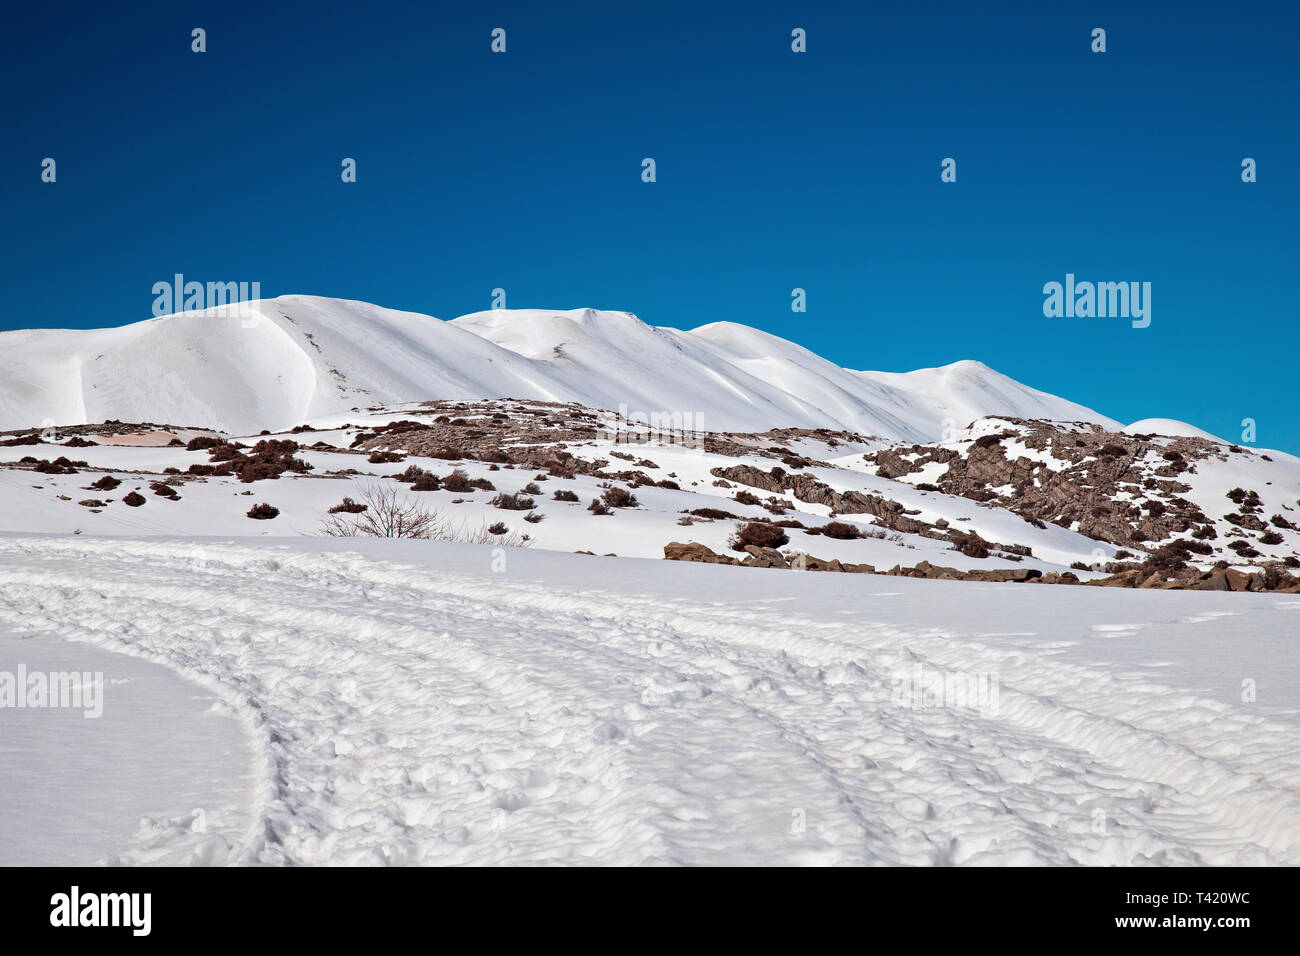 The road to Nida plateau covered with snow. In the background the highest peaks of Psiloritis mountain. Rethimno, Crete, Greece. Stock Photo